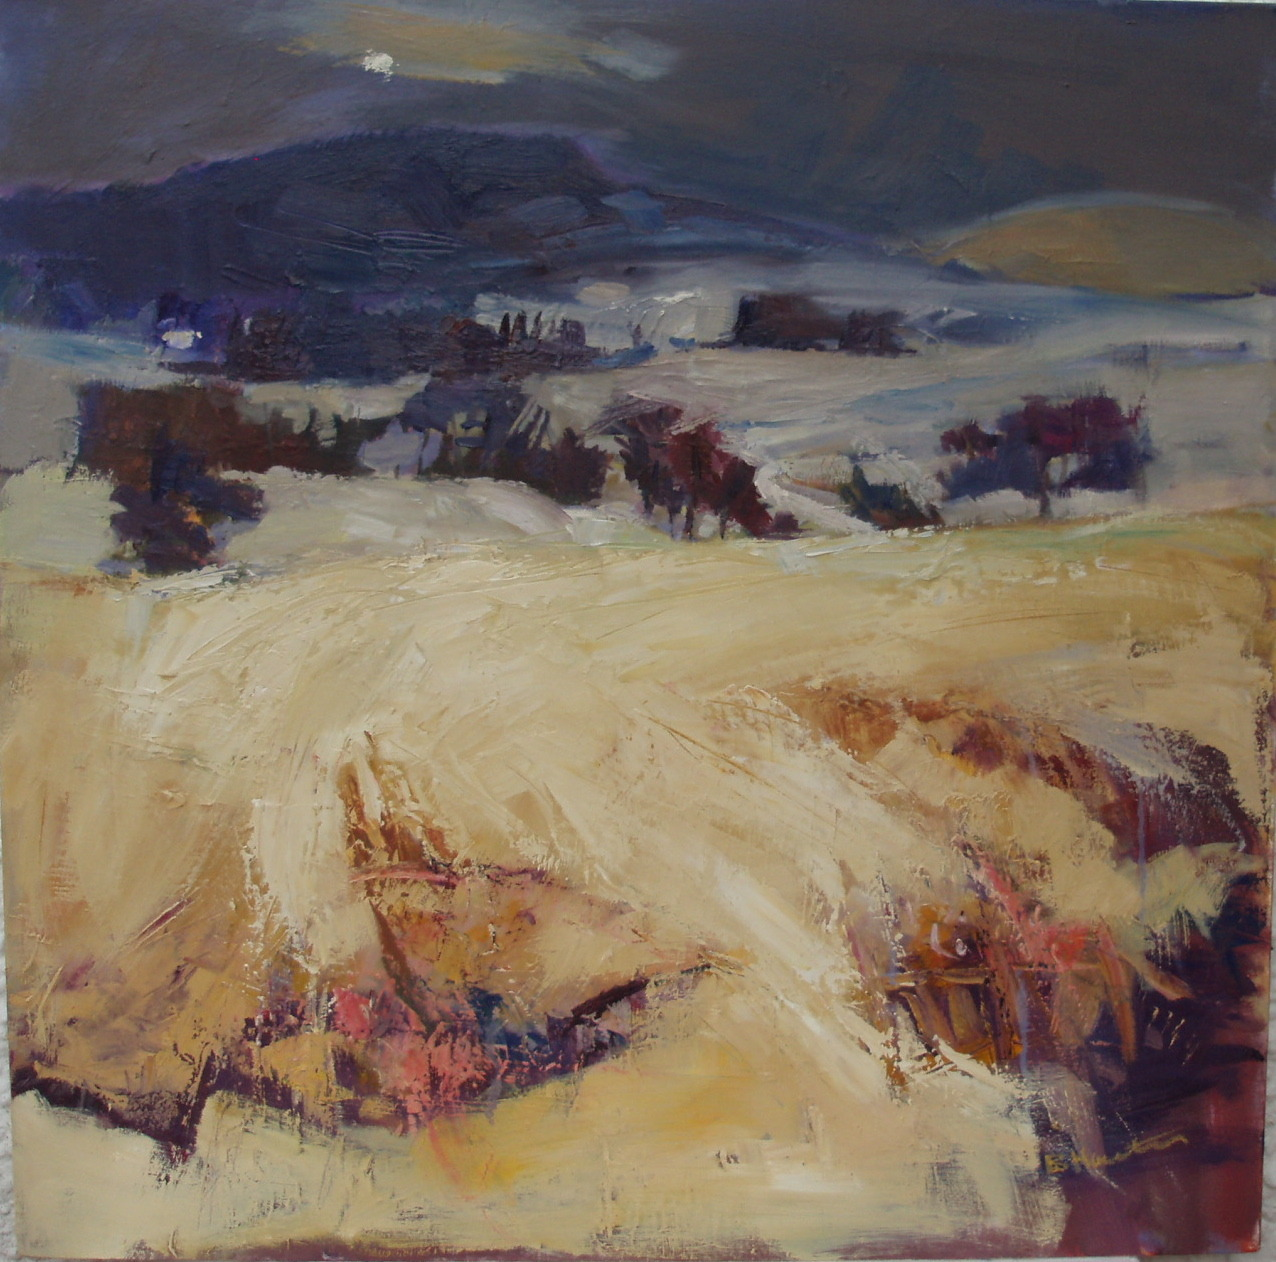 easelontheeye:  Loch Doon Landscape by Bridget Hunter (2010)http://bridgethunter.blogspot.co.uk/